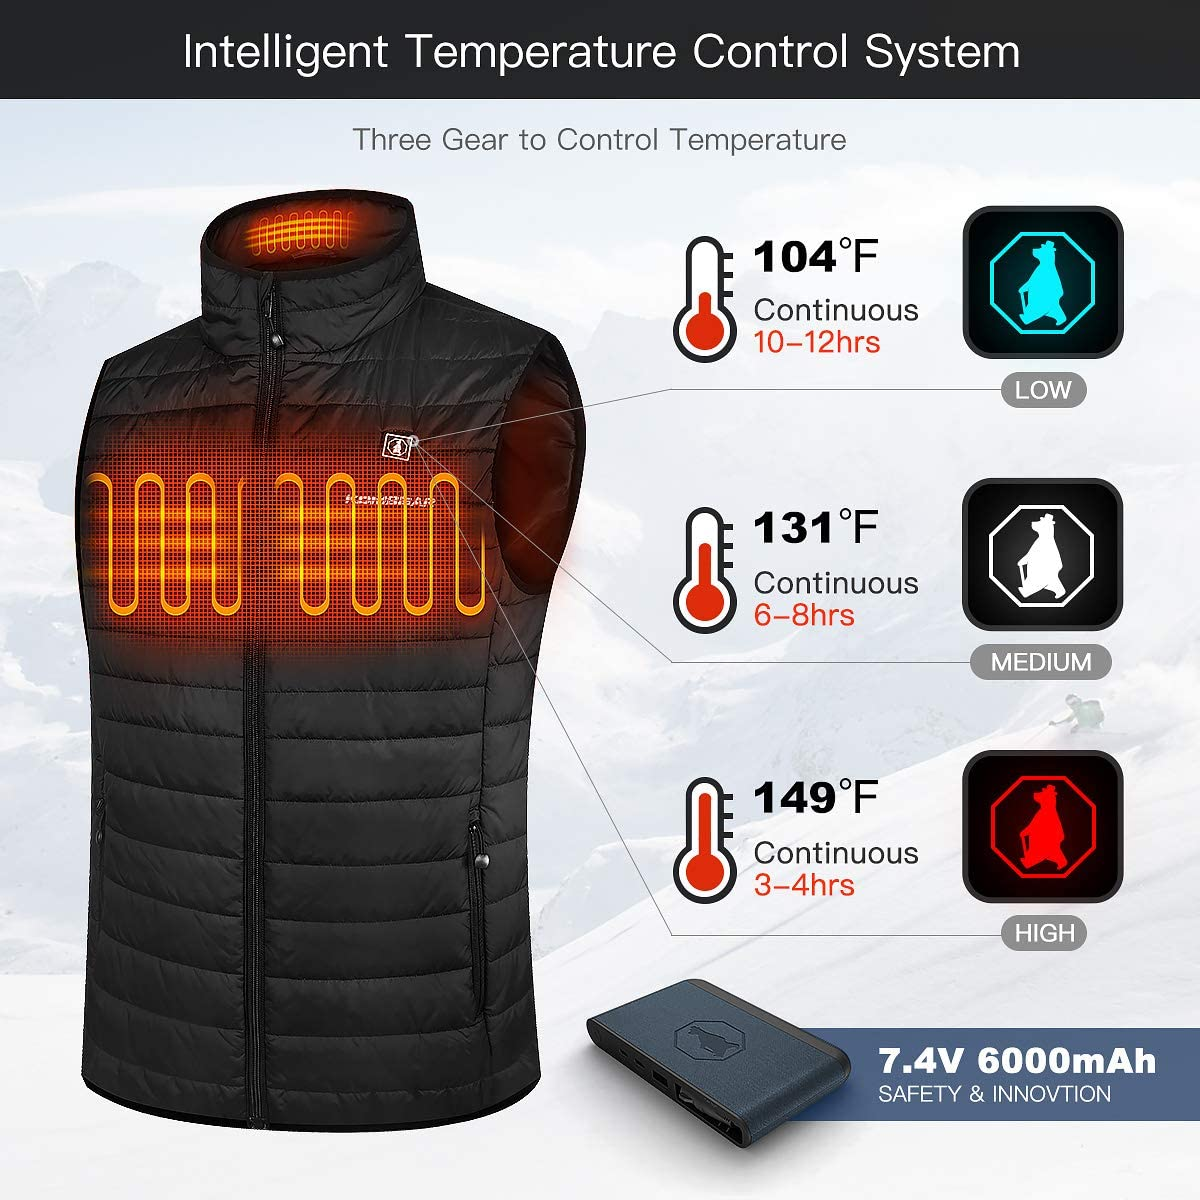 CLIMIX 2019 Lightweight Heated Vest for Men w//7.4v Heated Vest System Temperature Control 100/% Machine Wash